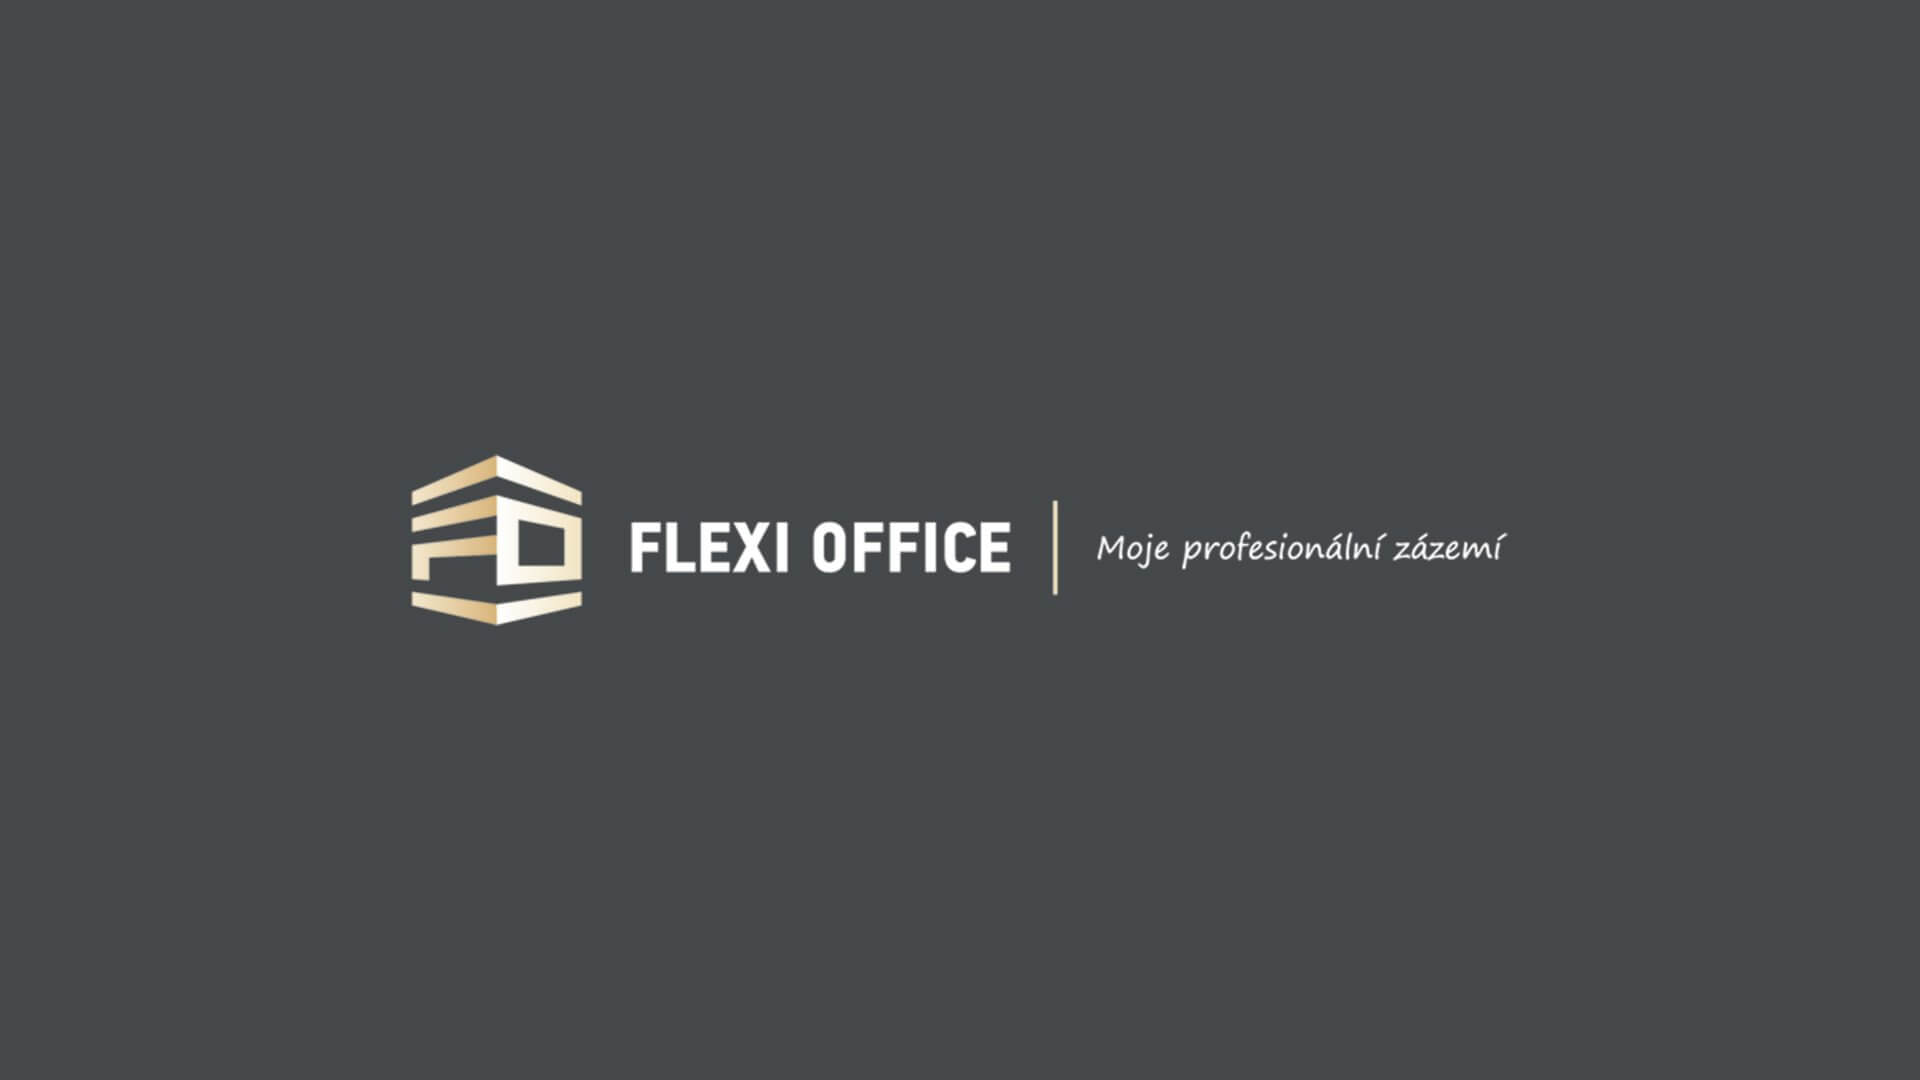 FLEXI OFFICE se rozšiřuje!